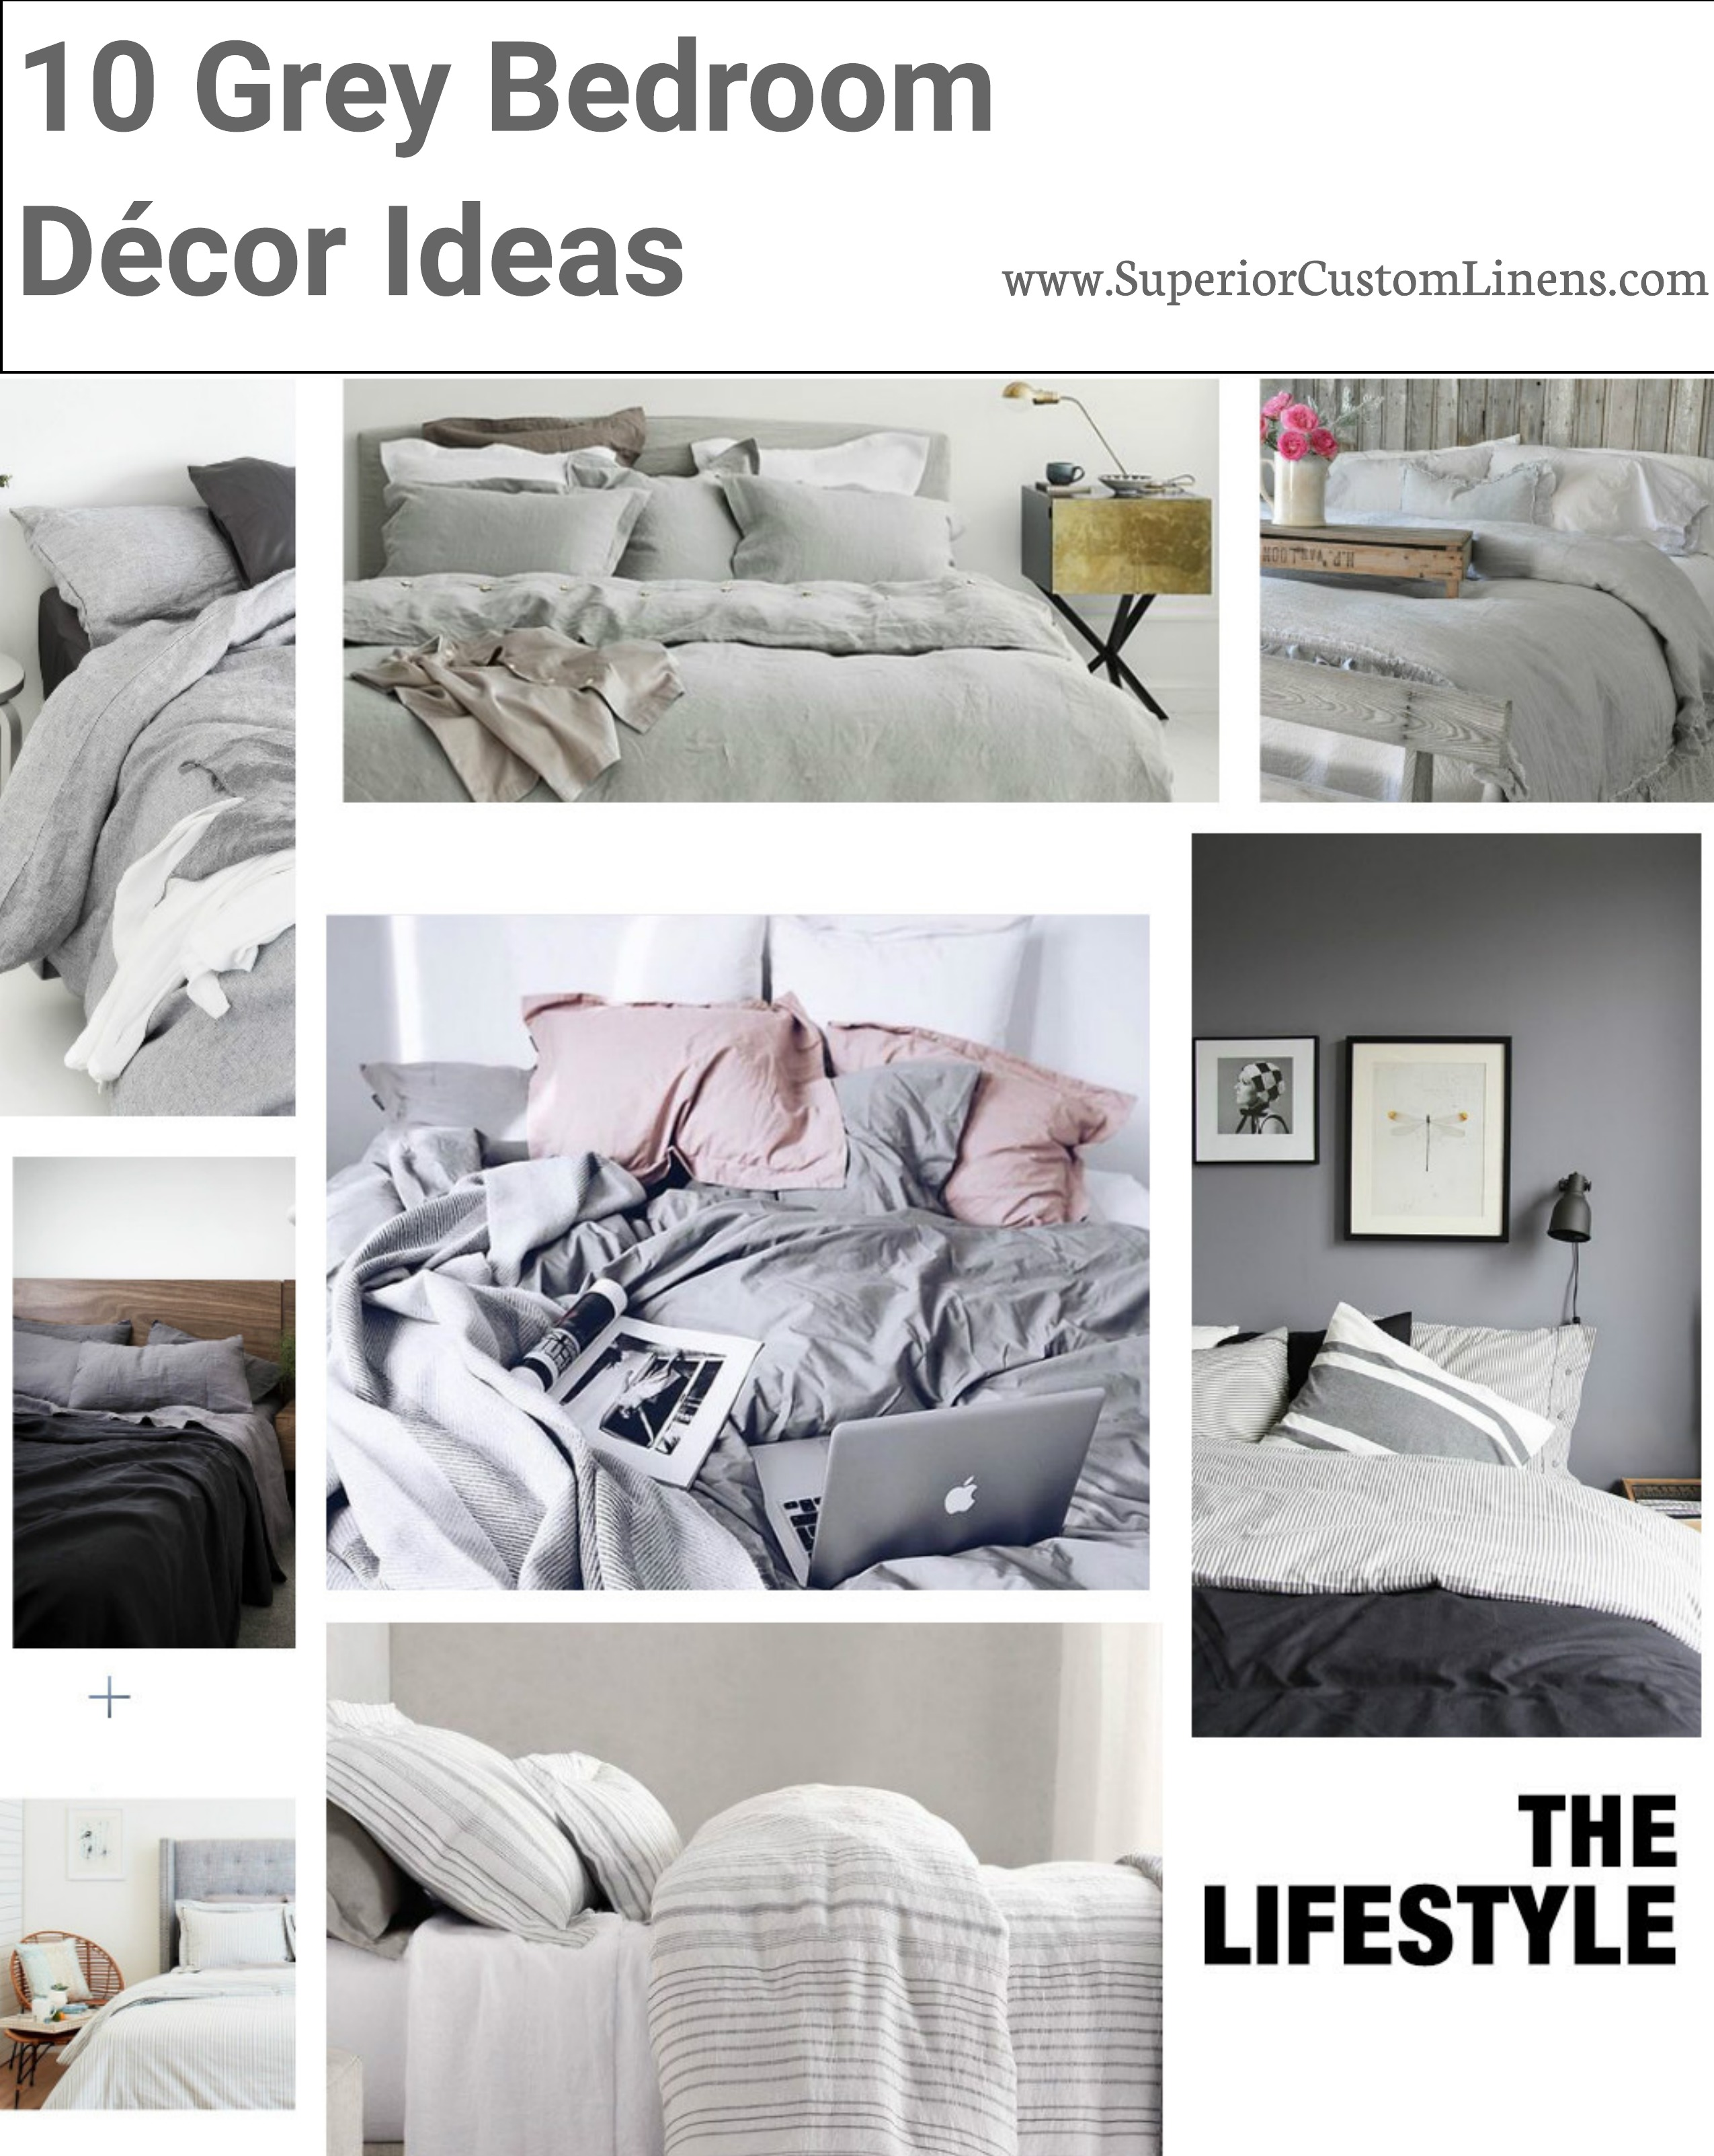 Grey Bedroom Decor Superior Custom Linens